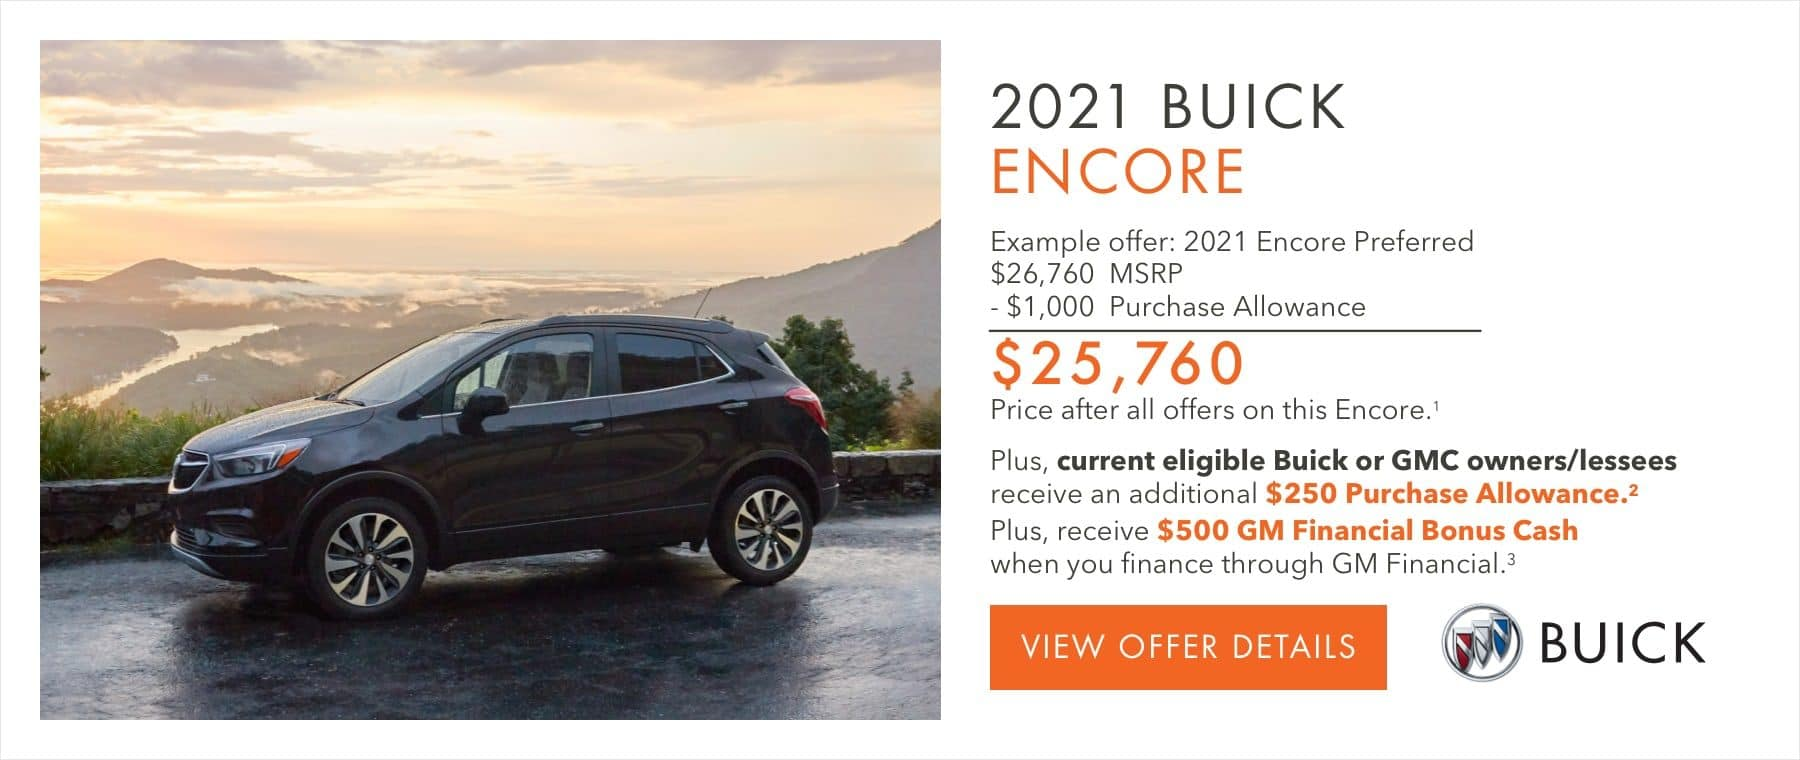 EXAMPLE OFFER: 2021 Encore Preferred $26,760 MSRP -$1,000 Purchase Allowance $25,760 Price after all offers on this Encore.1 Plus, current eligible Buick or GMC owners/lessees receive an additional $250 Purchase Allowance.2 Plus, receive $500 GM Financial Bonus Cash when you finance through GM Financial.3